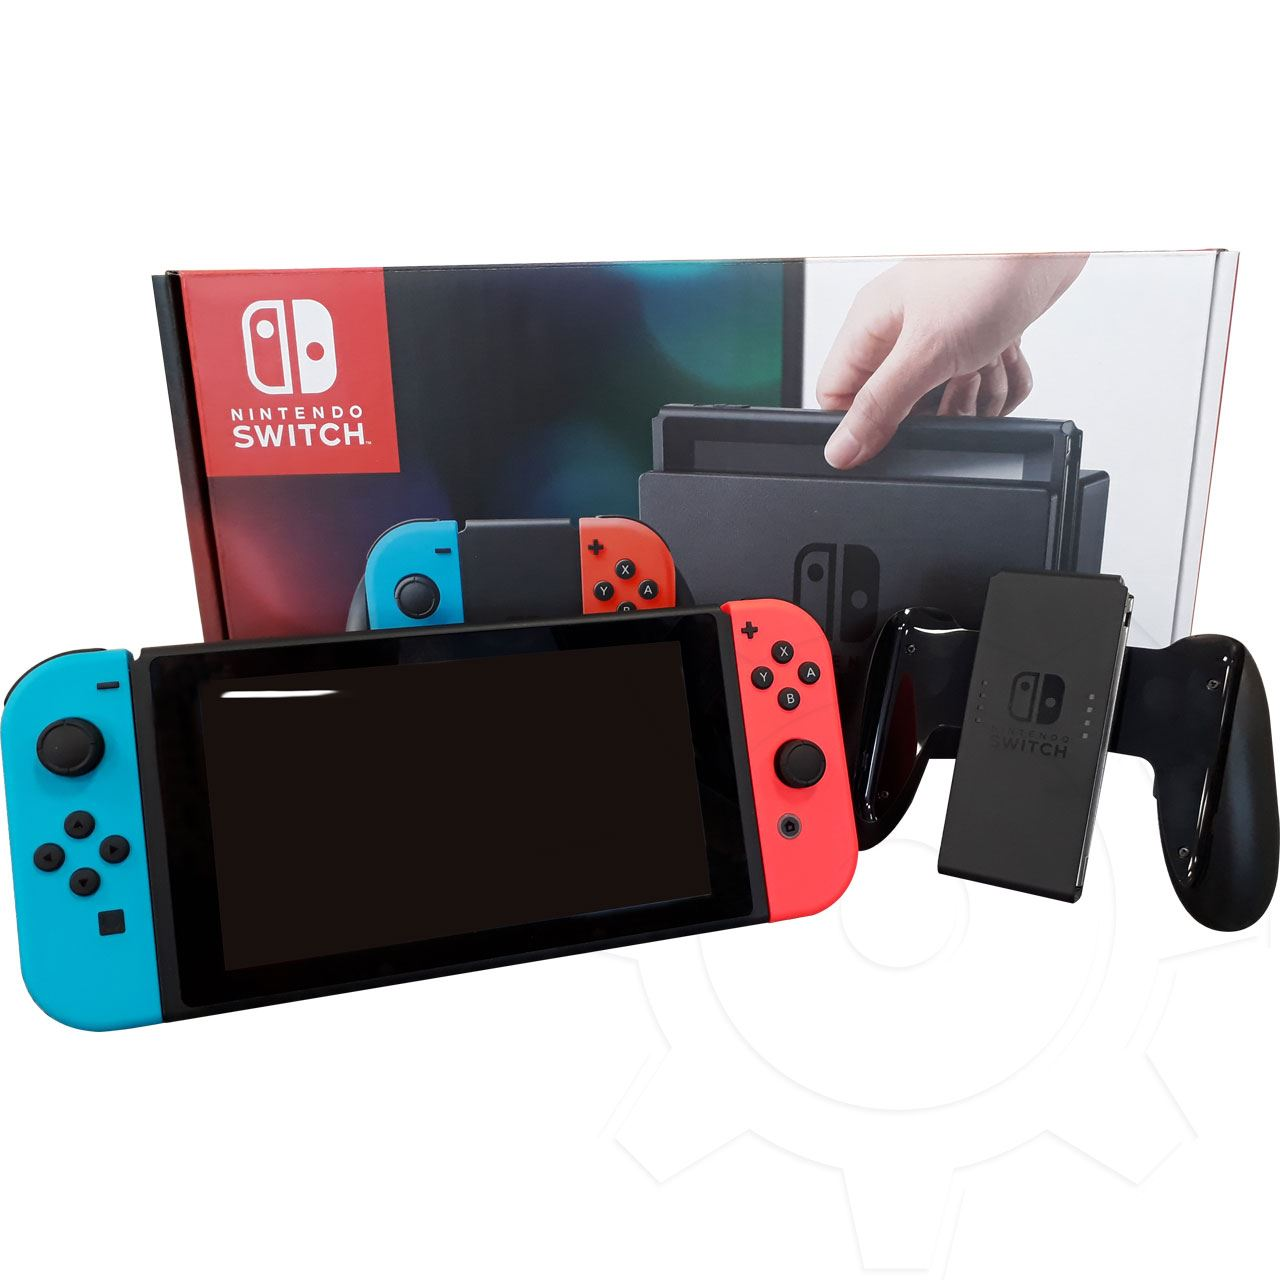 nintendo switch konsole schwarz blau rot nintendo. Black Bedroom Furniture Sets. Home Design Ideas